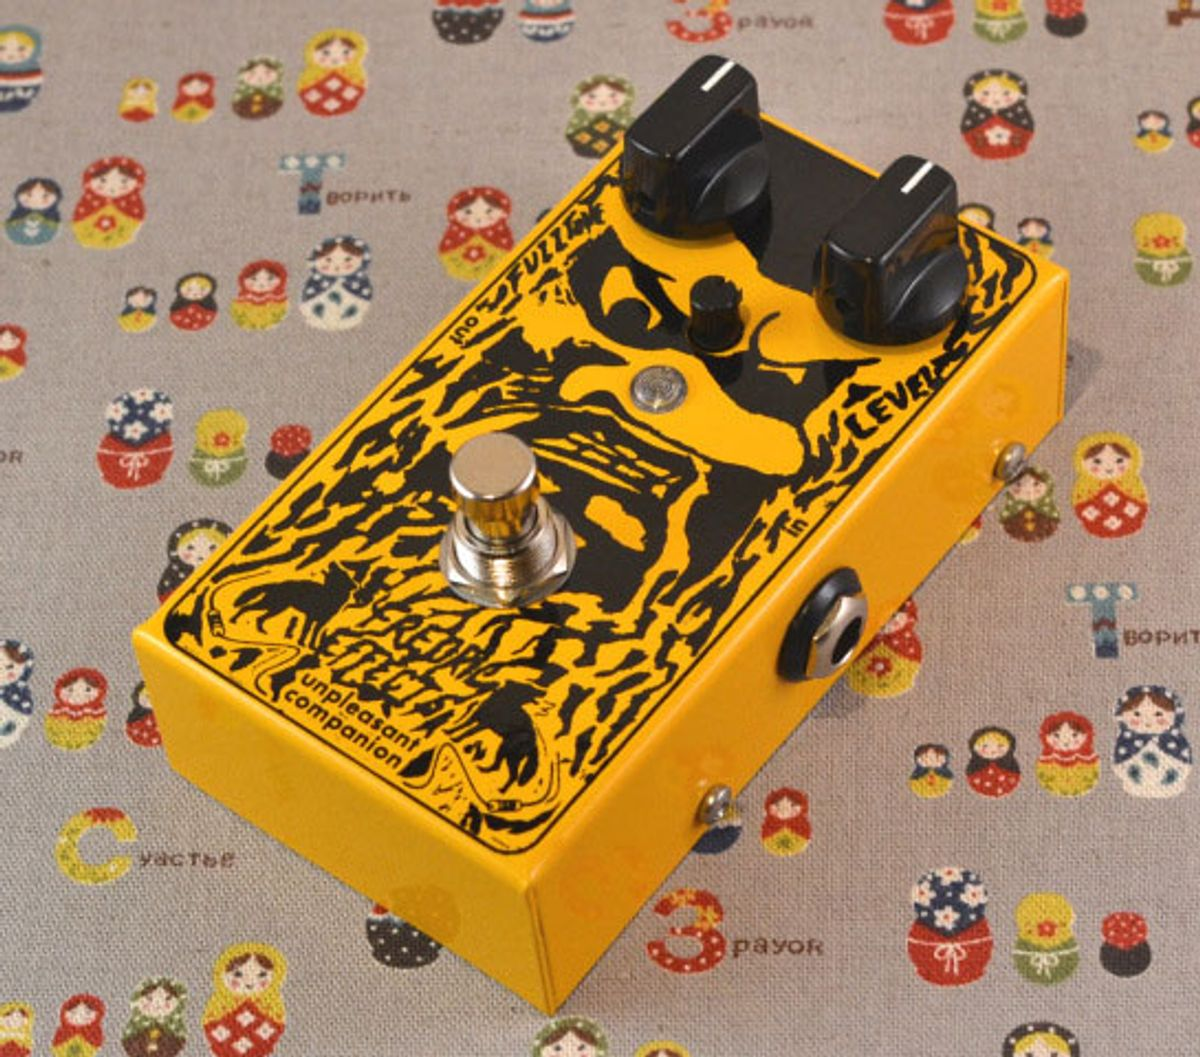 Fredric Effects Introduces the Unpleasant Companion MKII